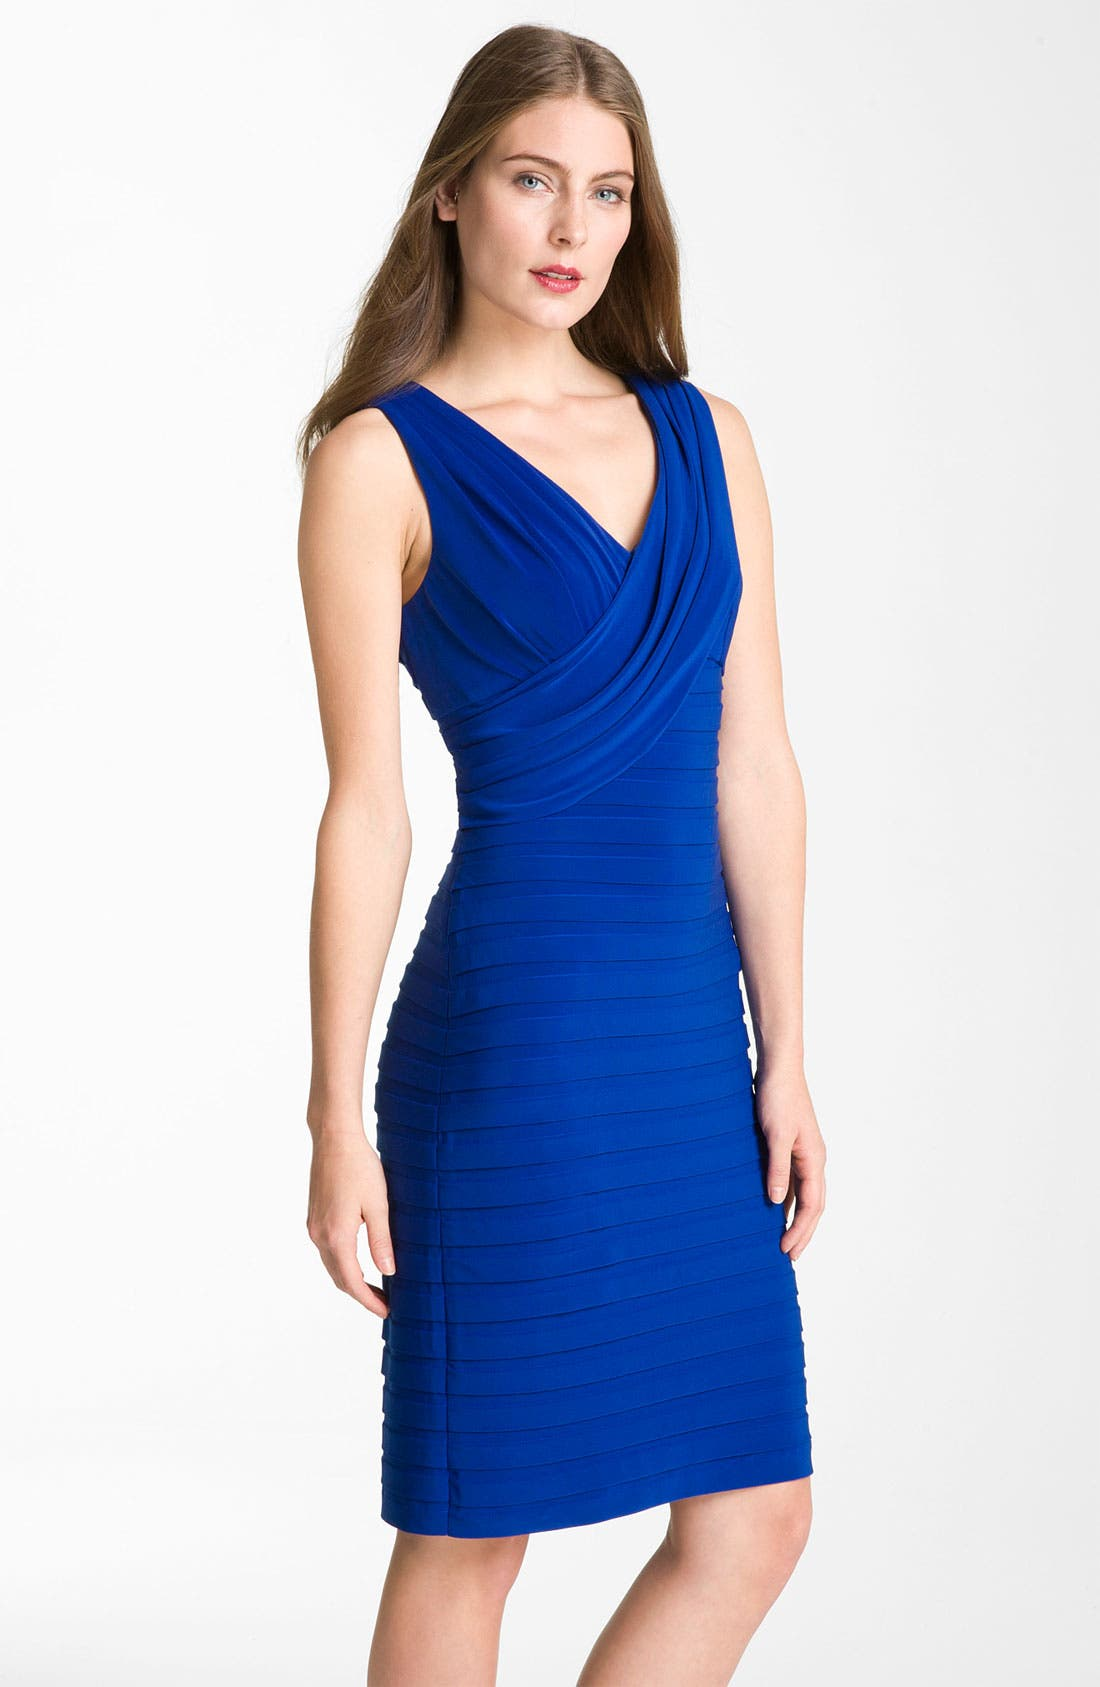 Alternate Image 1 Selected - Adrianna Papell Banded Surplice Jersey Dress